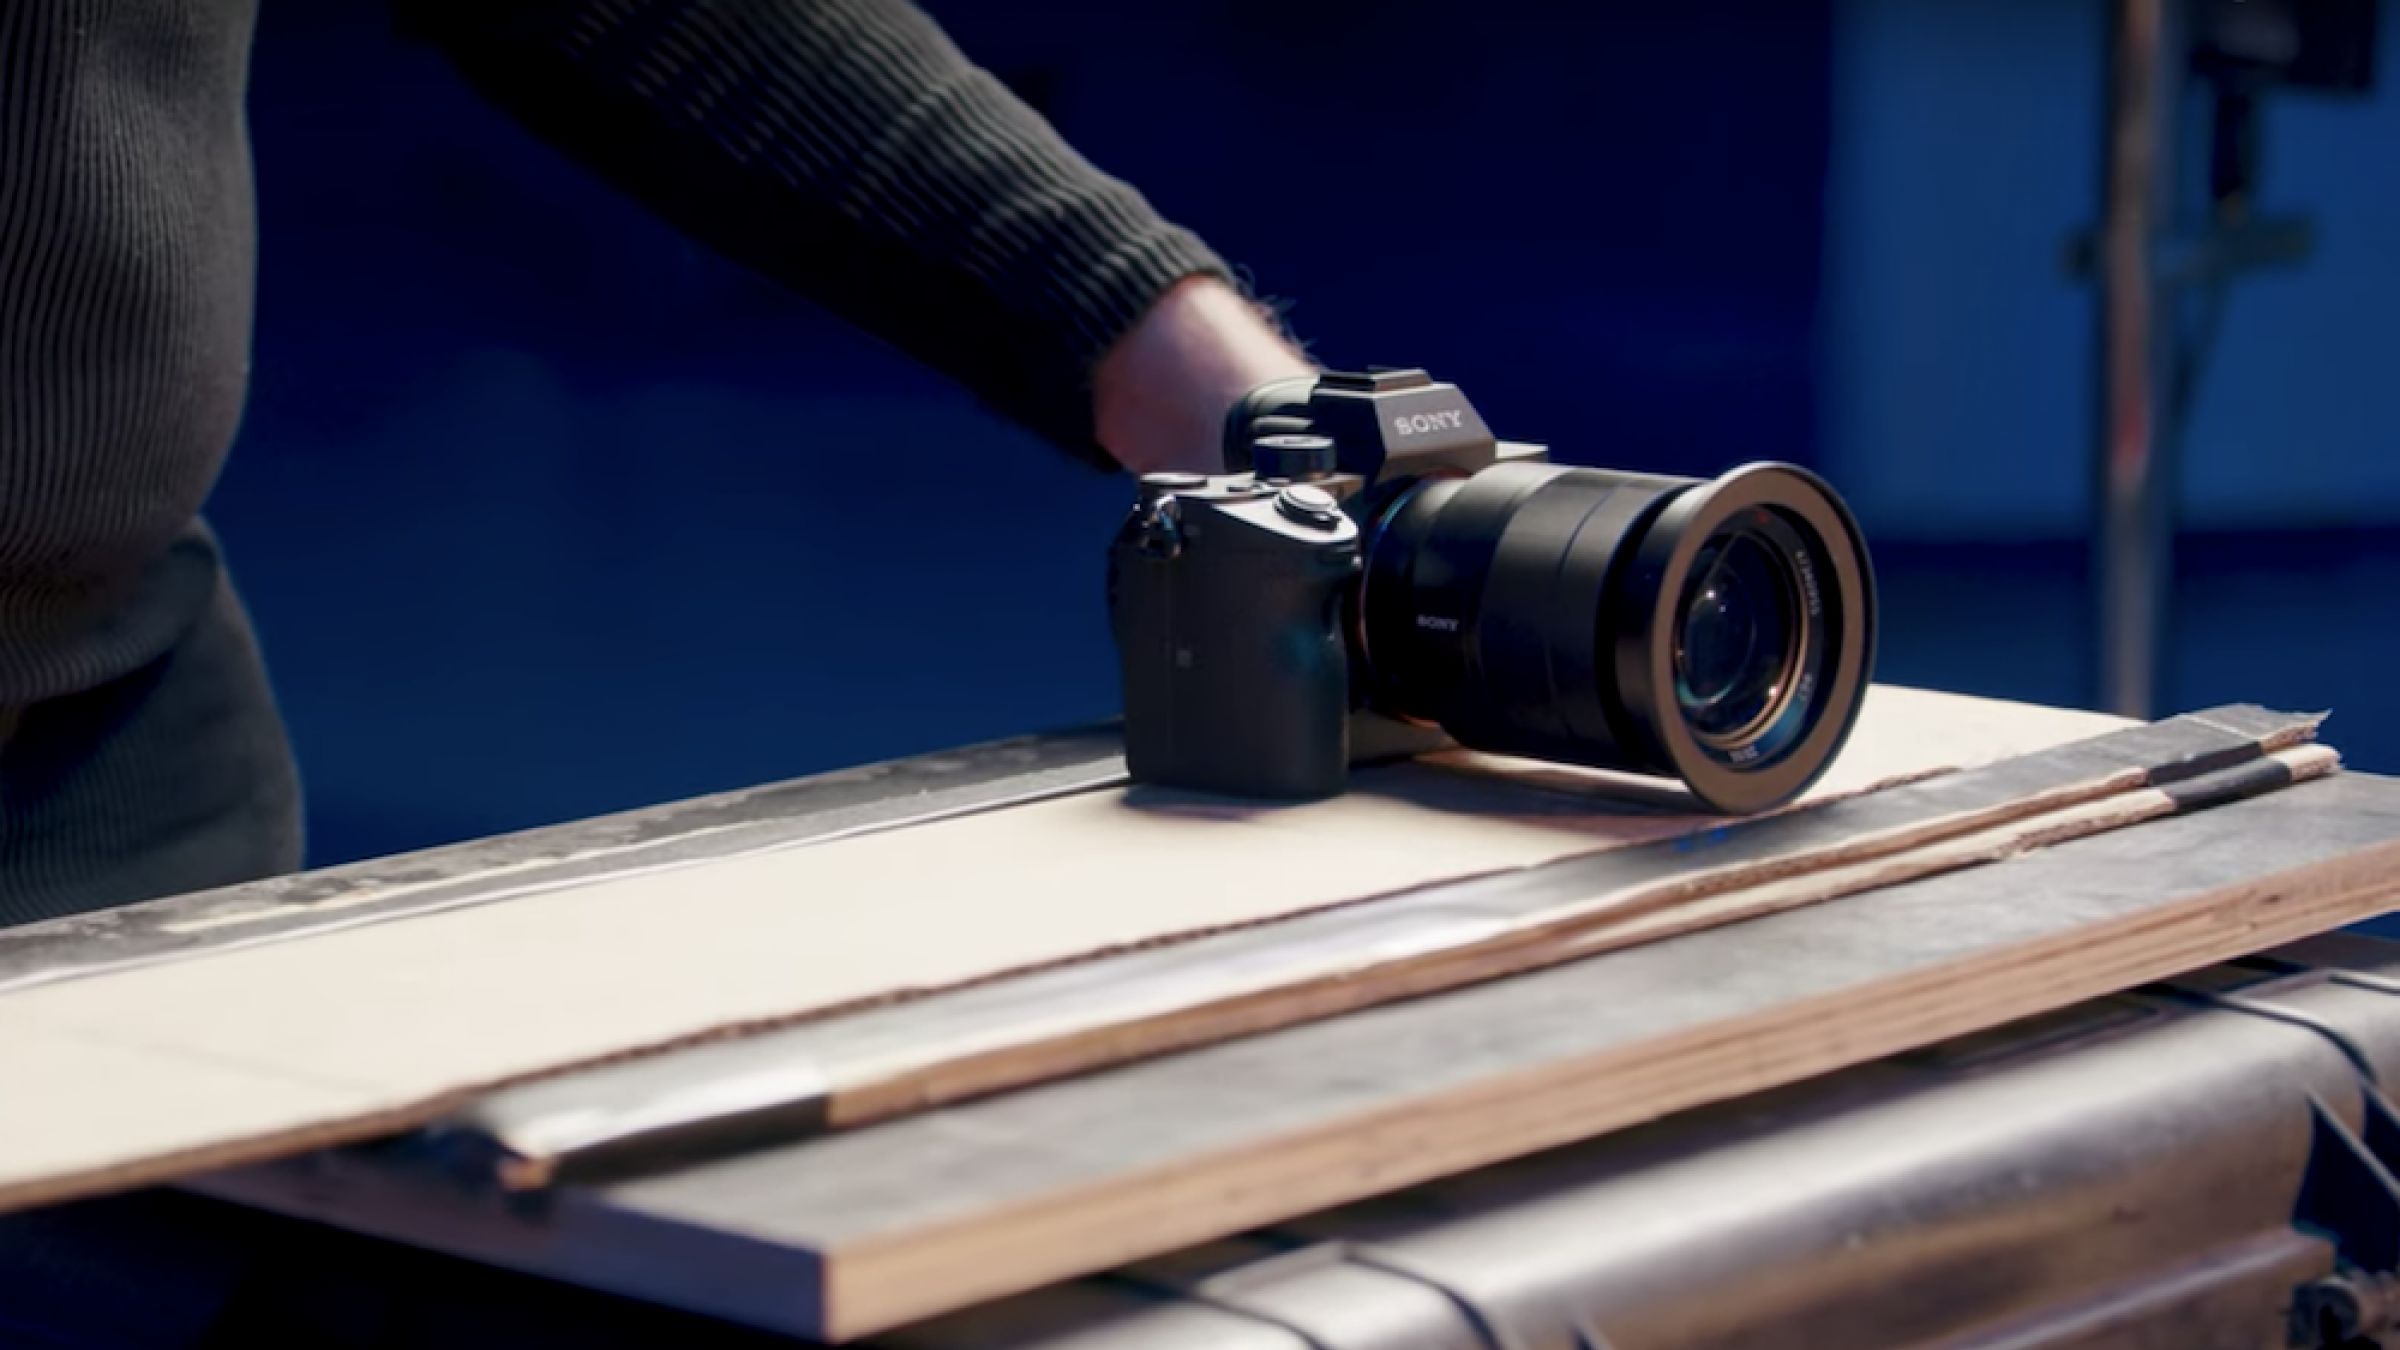 9 Clever Ways You Can Turn Cardboard into Filmmaking Gear